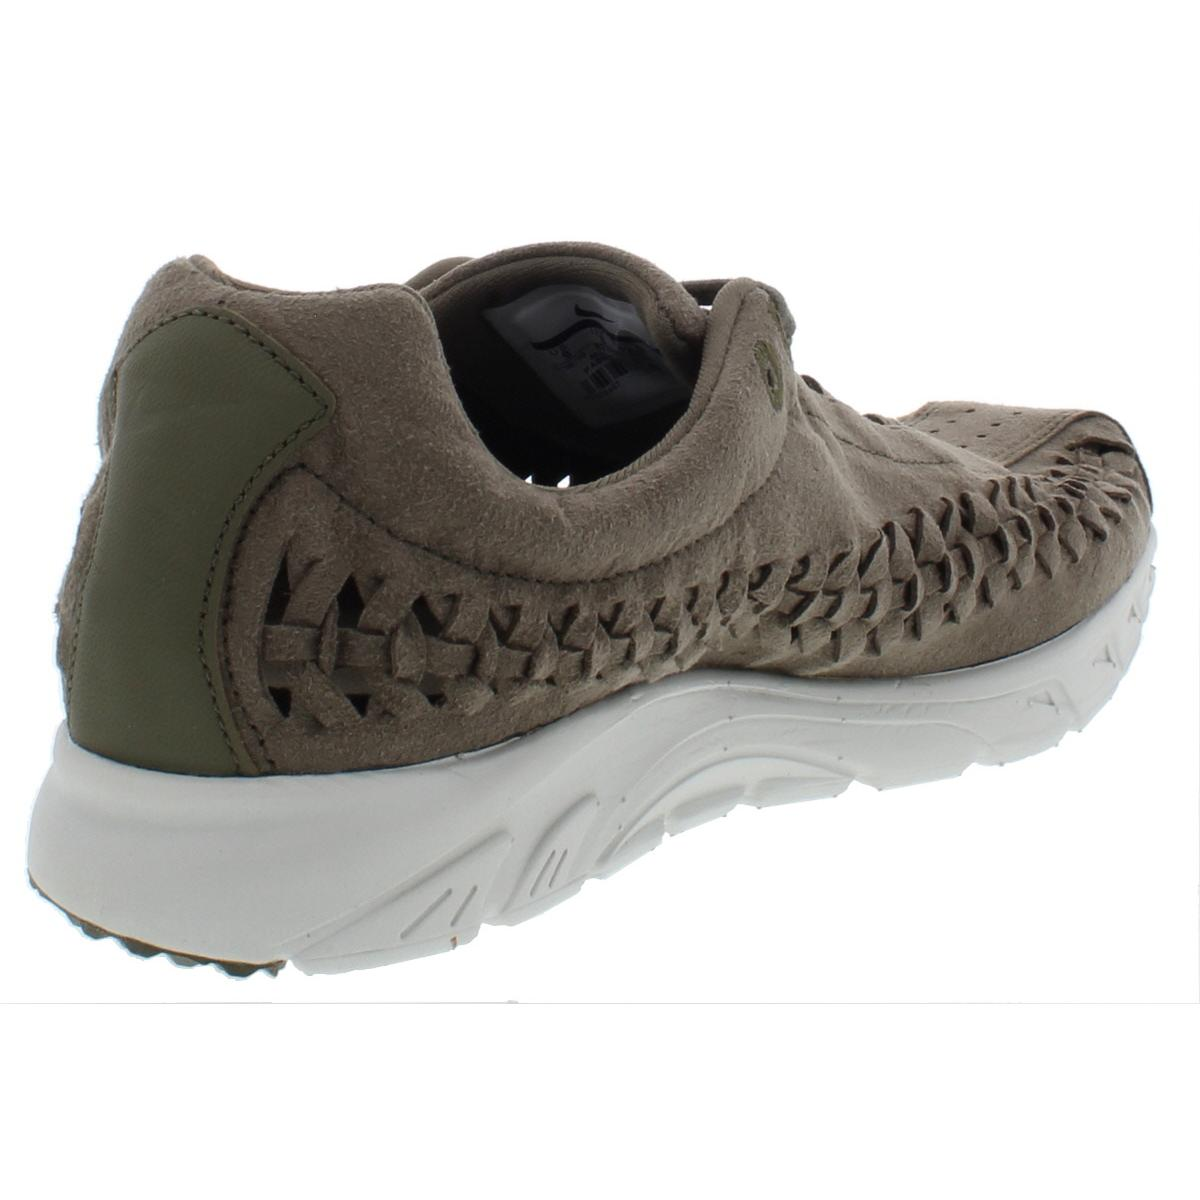 Nike-Mens-Mayfly-Woven-Suede-Woven-Training-Fashion-Sneakers-Shoes-BHFO-2898 thumbnail 14